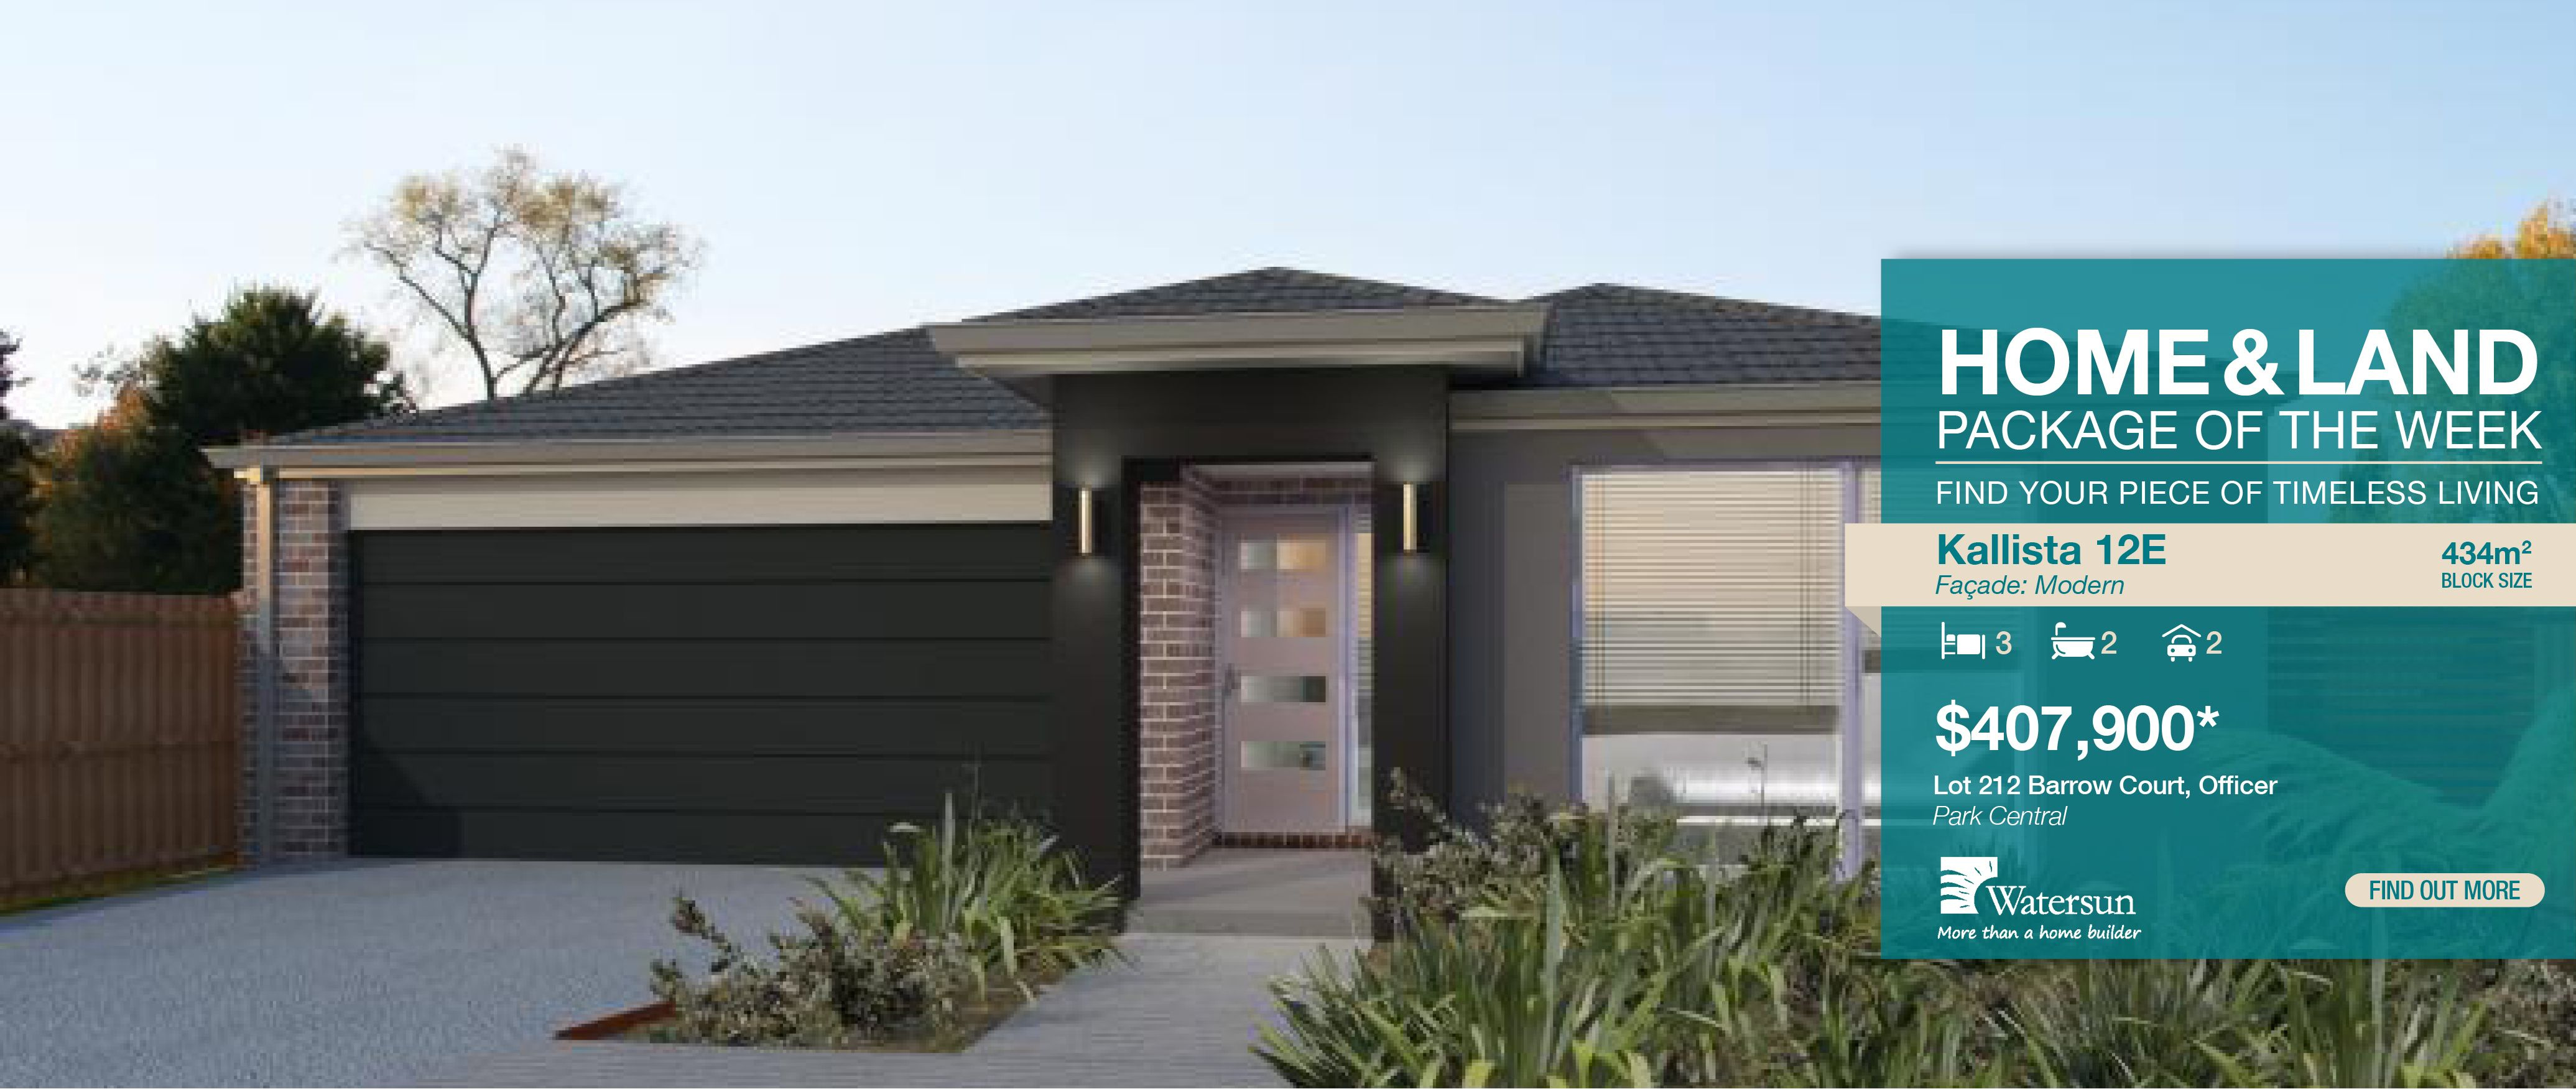 Home And Land Packages Very Close To Public Transport As Well Cycle Pedestrian Access 300 Lots Are Available In Officer Park Central Community At